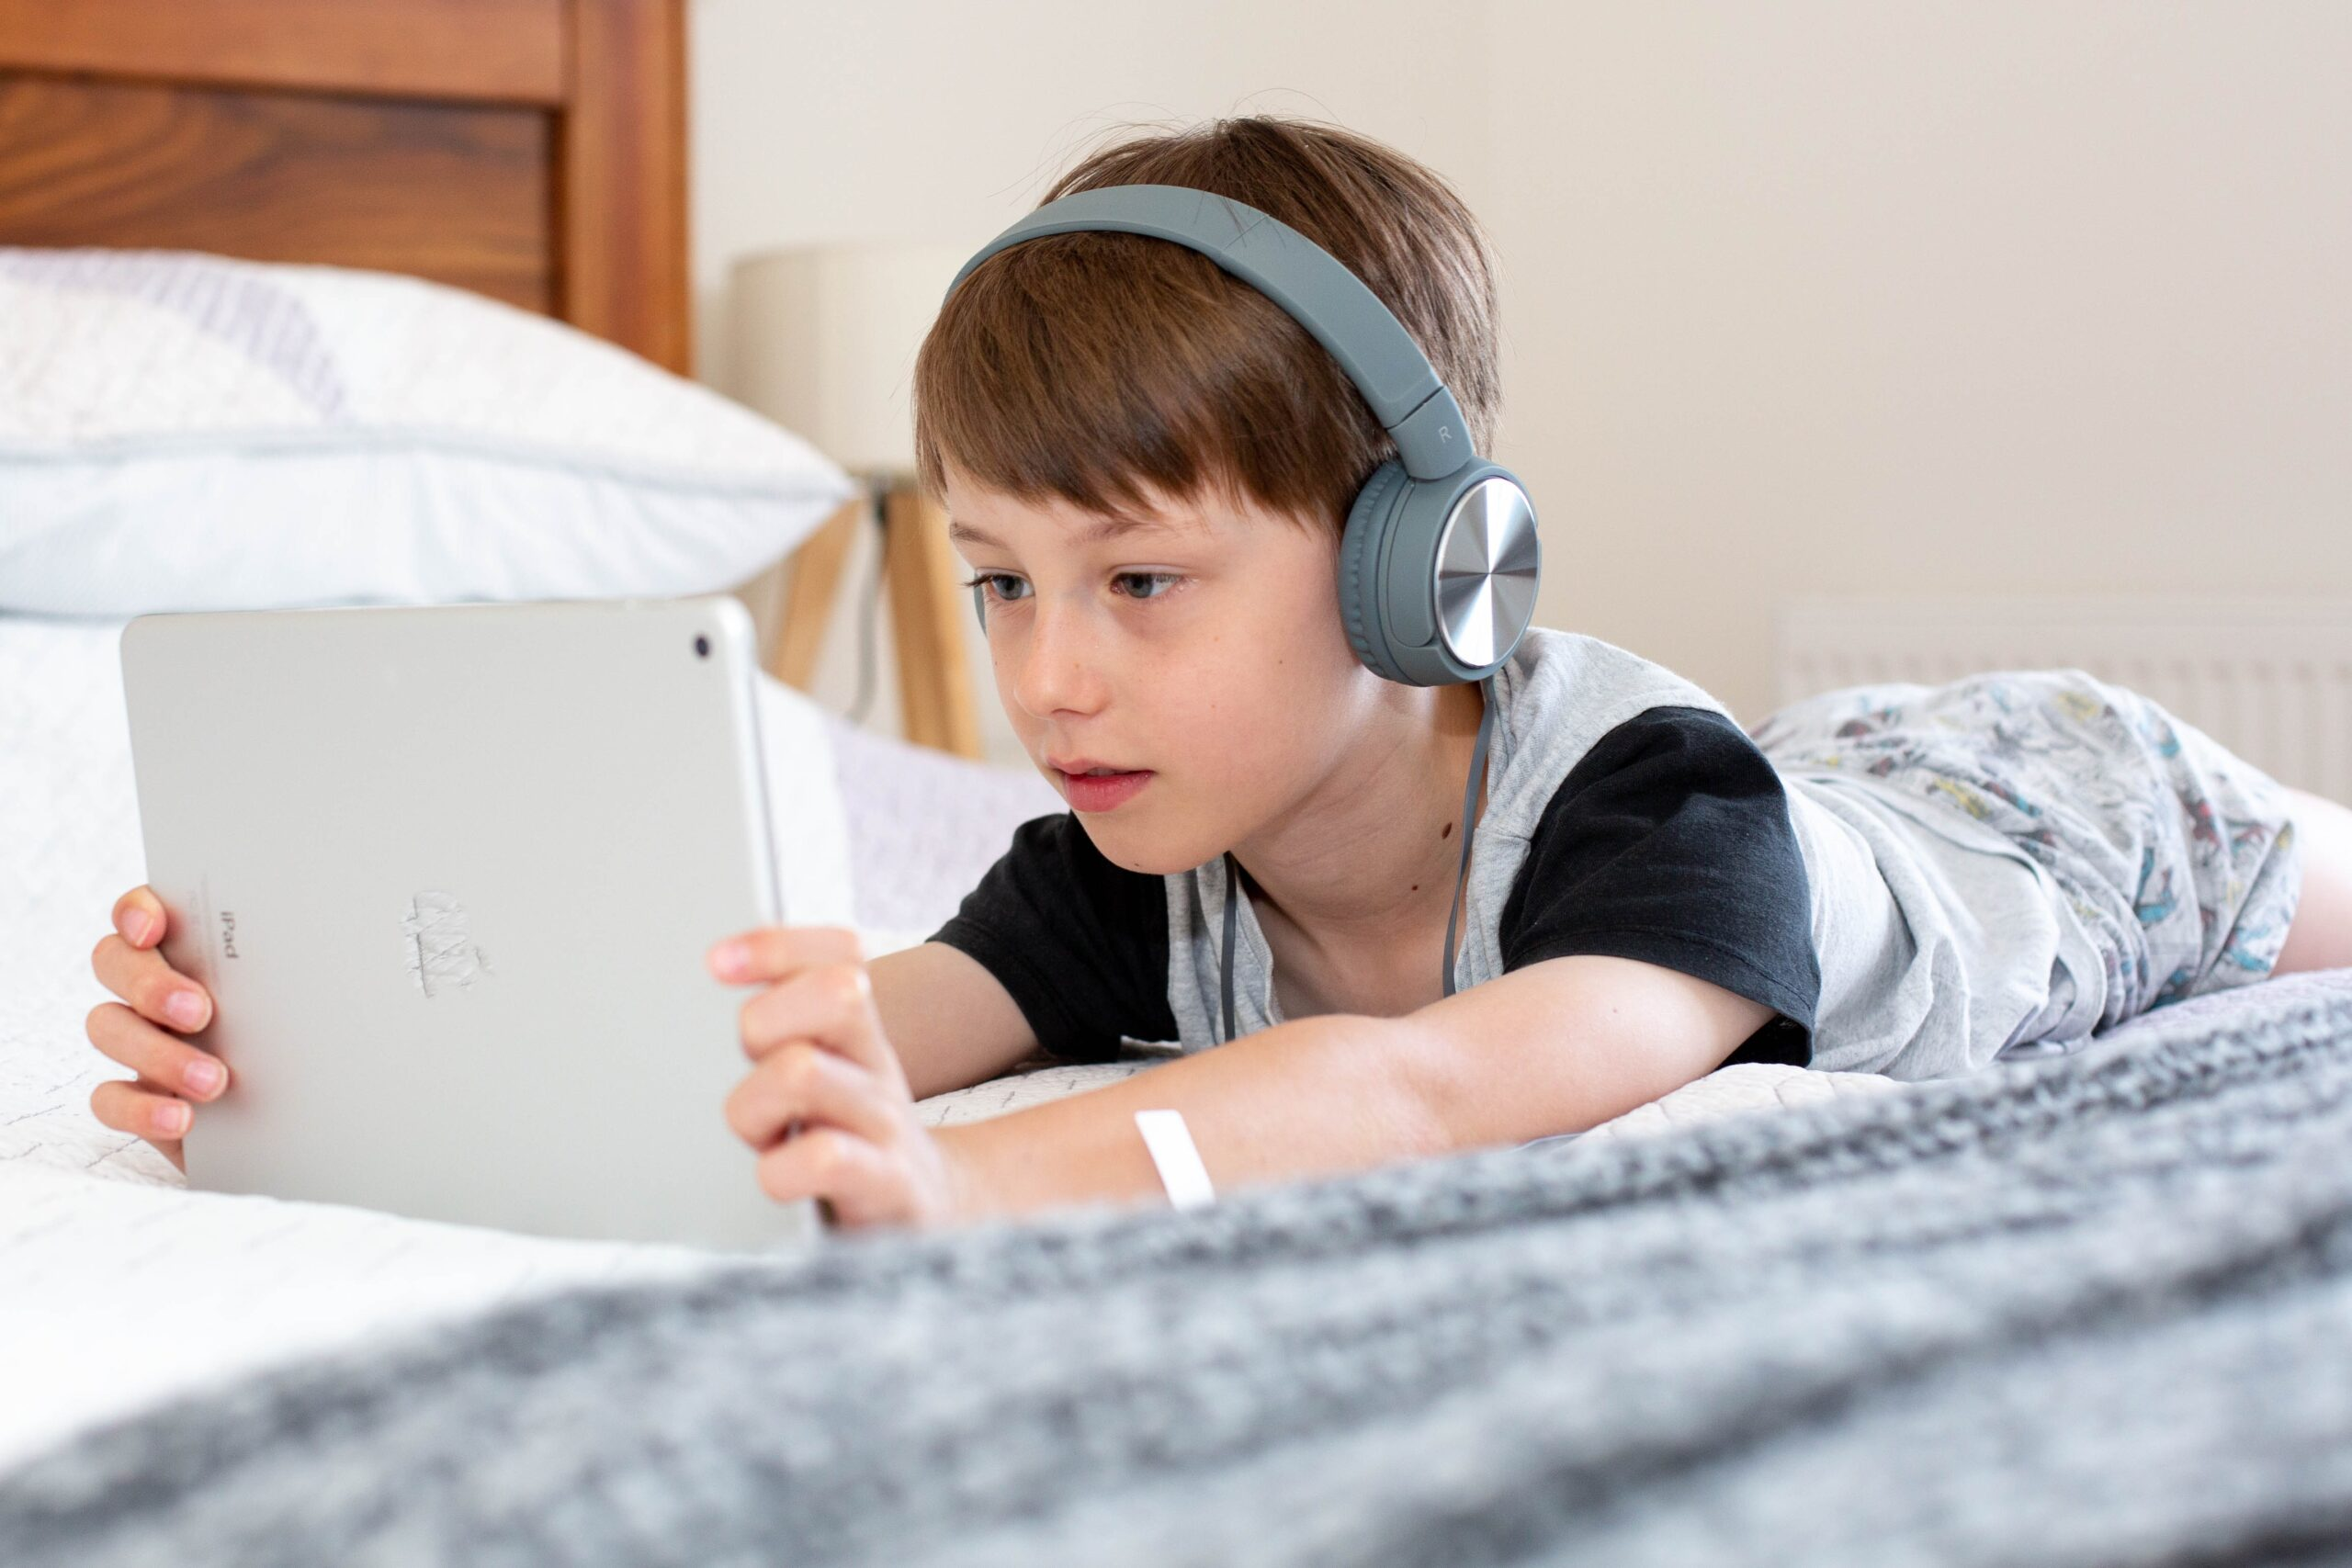 Top 5 Educational Games Your Kids Should Play at Their Computer